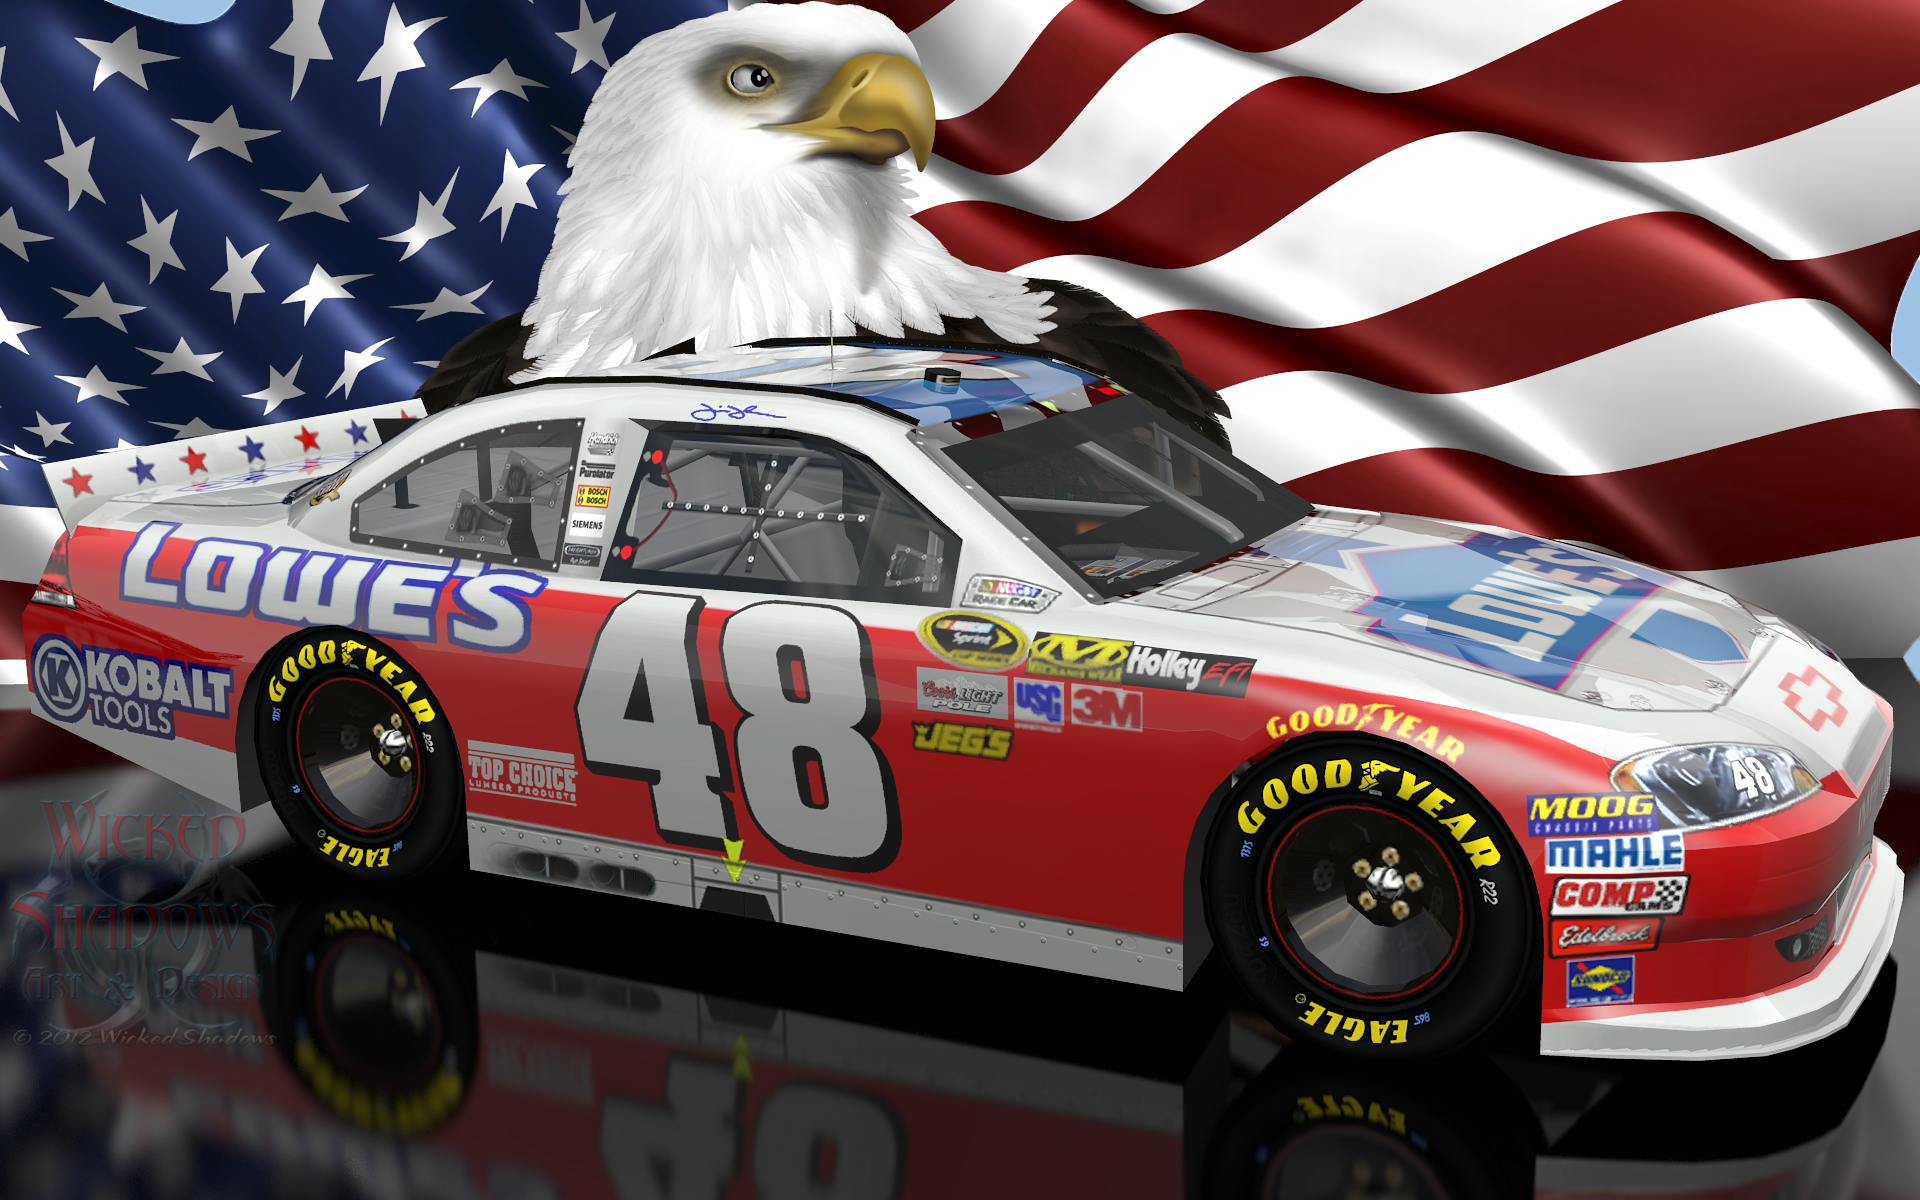 Jimmie Johnson NASCAR Unites Patriotic Wallpaper Download 1920x1200